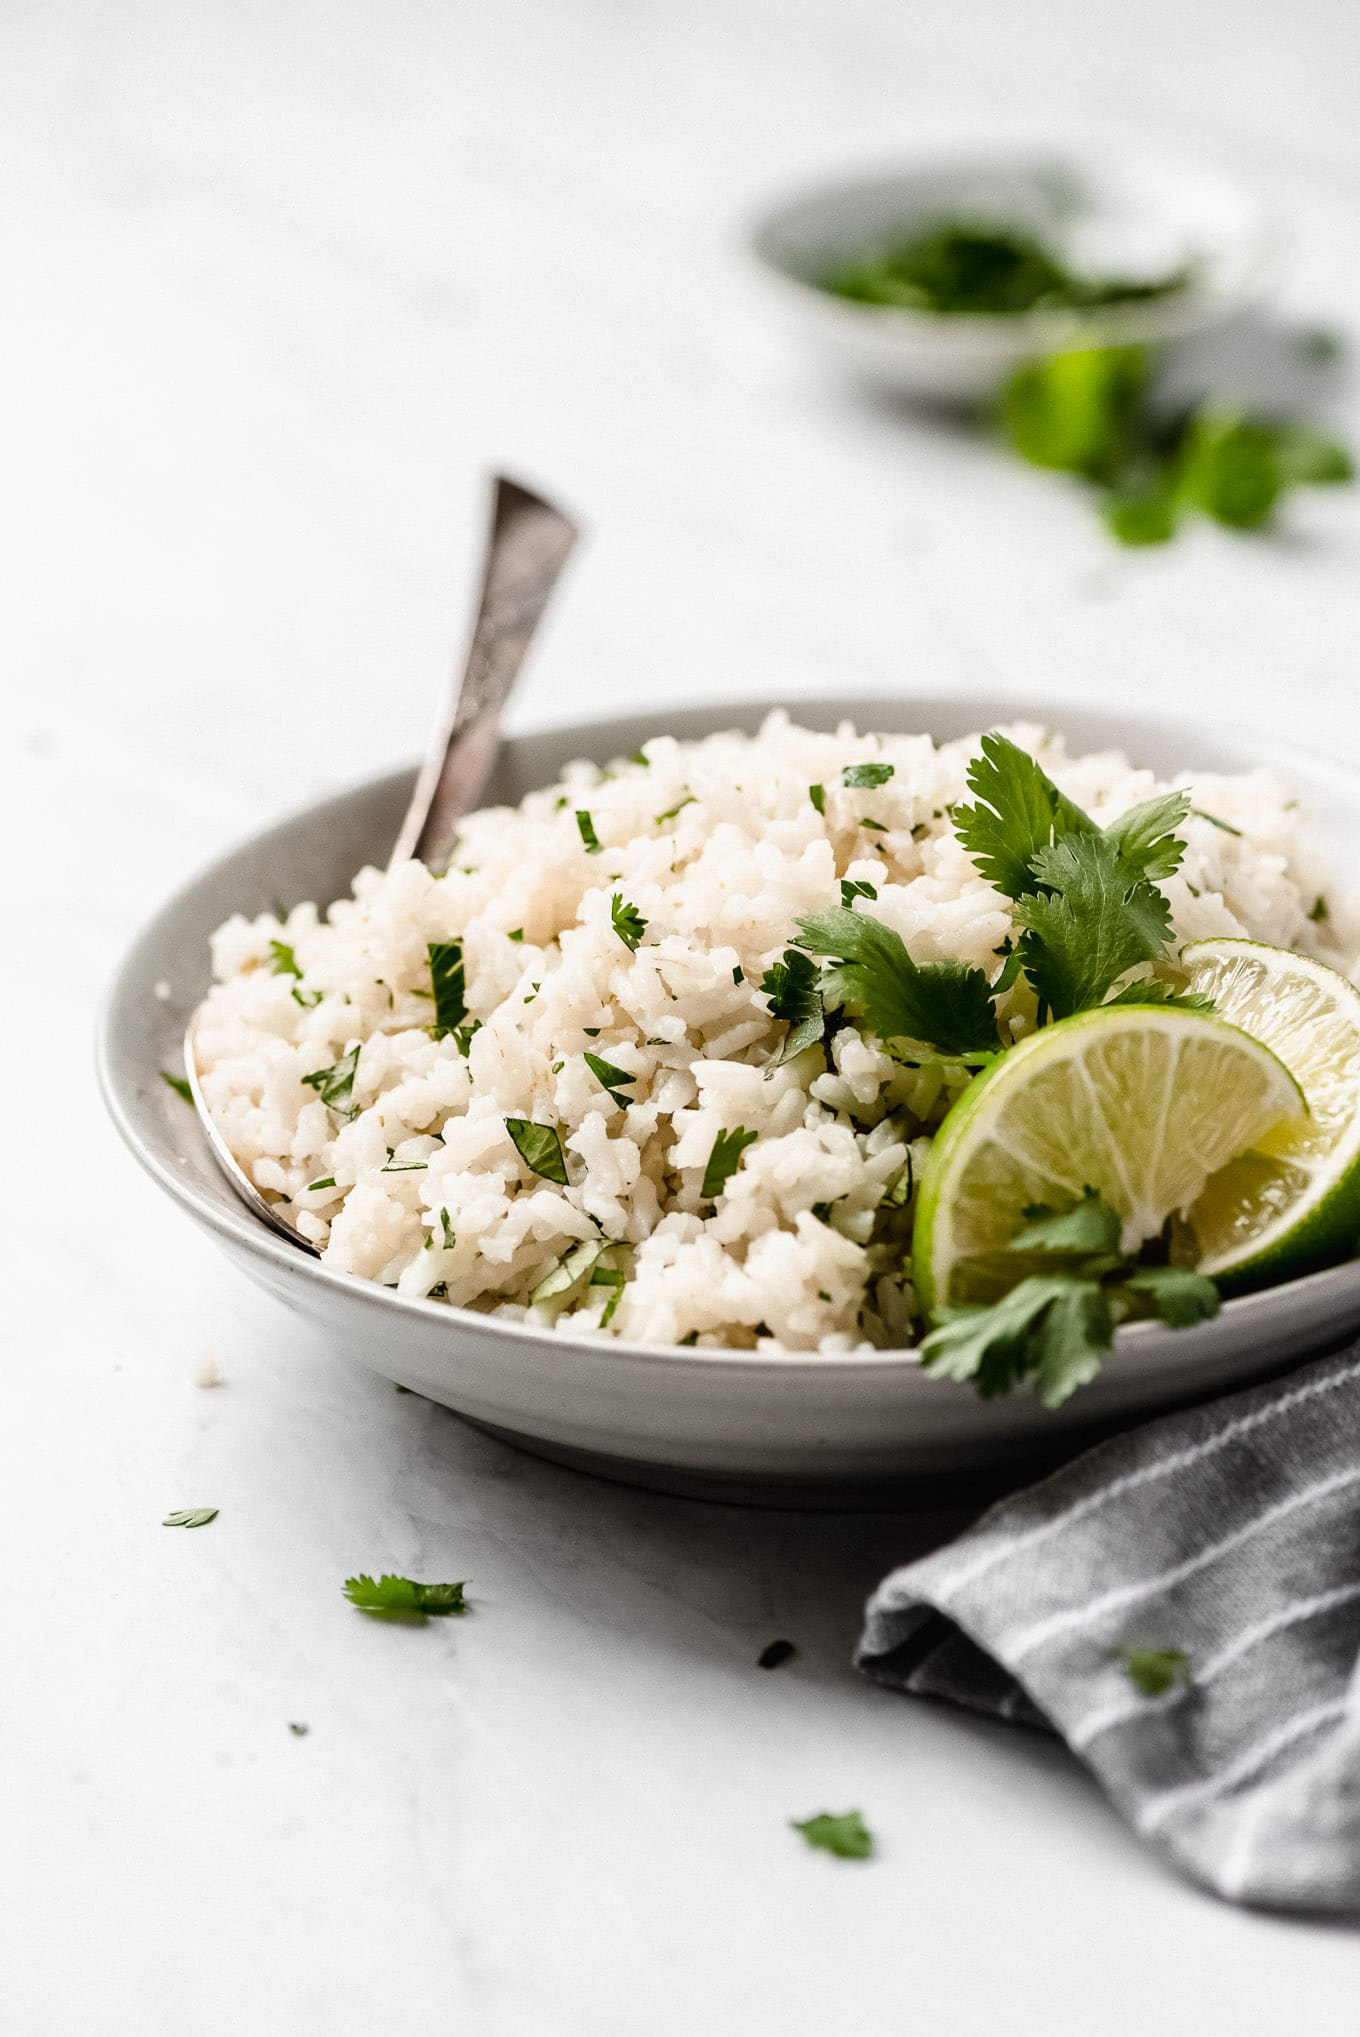 Cilantro Lime Rice like Chioptle's in a bowl garnished with lime wedges and cilantro leaves.